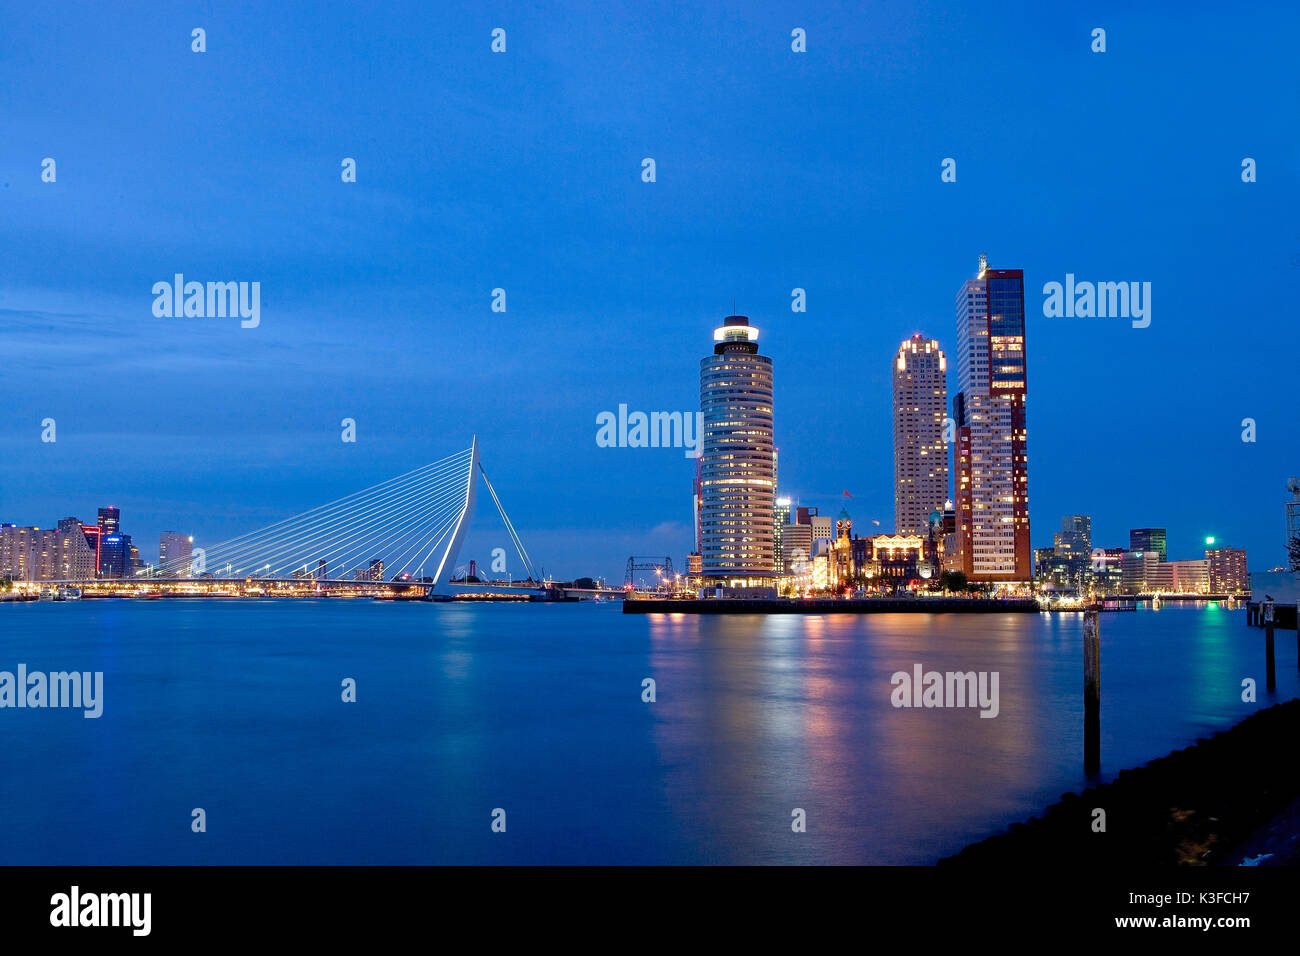 Night view at Rotterdam. On the left the Erasmusbrücke, on the right the town planning development area Kop of Van Zuid. - Stock Image